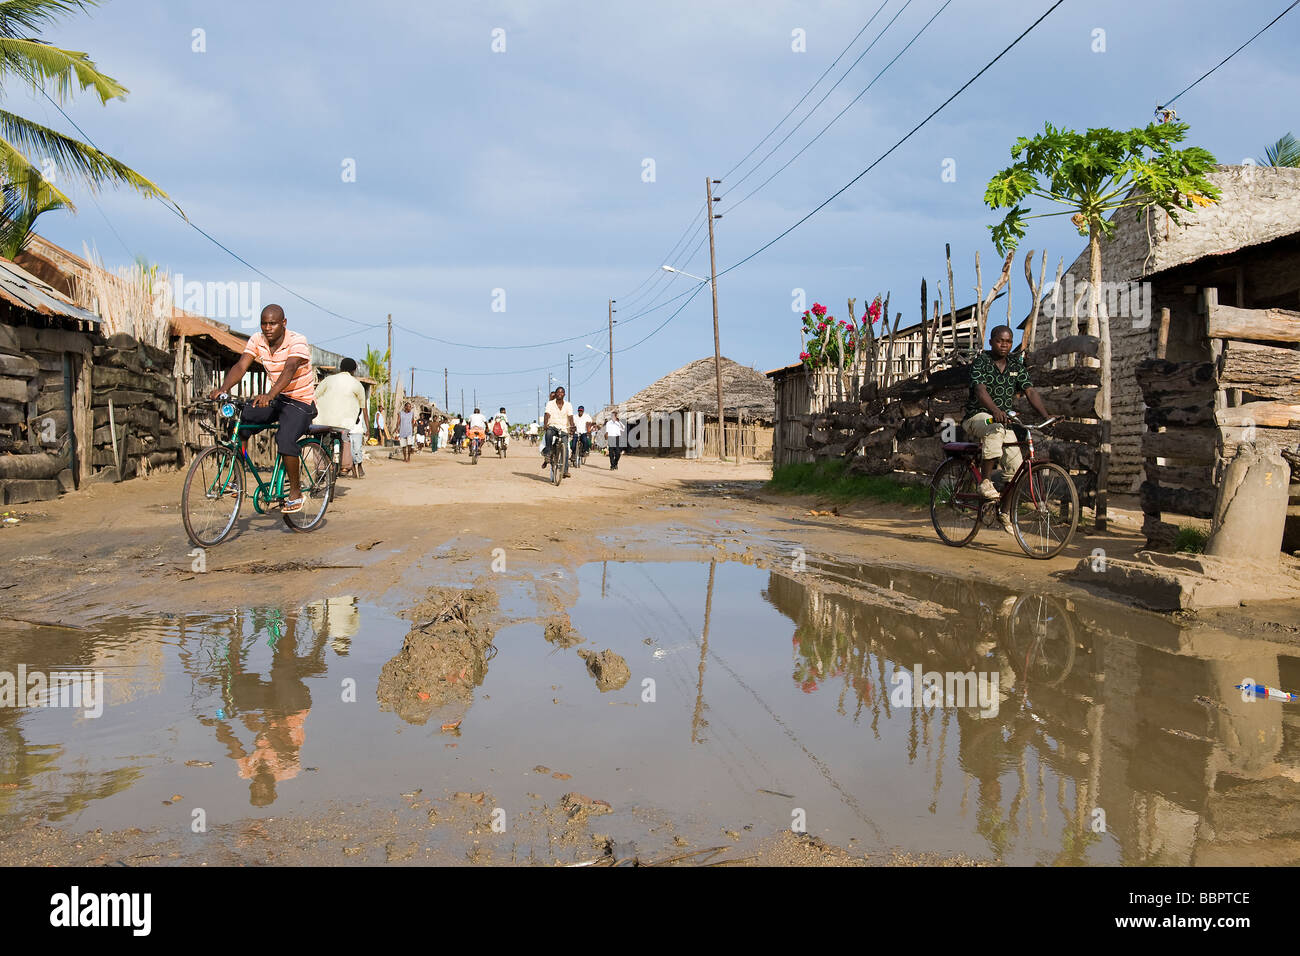 Road with water filled potholes provide breeding grounds for Malaria mosquitoes Quelimane Mozambique - Stock Image